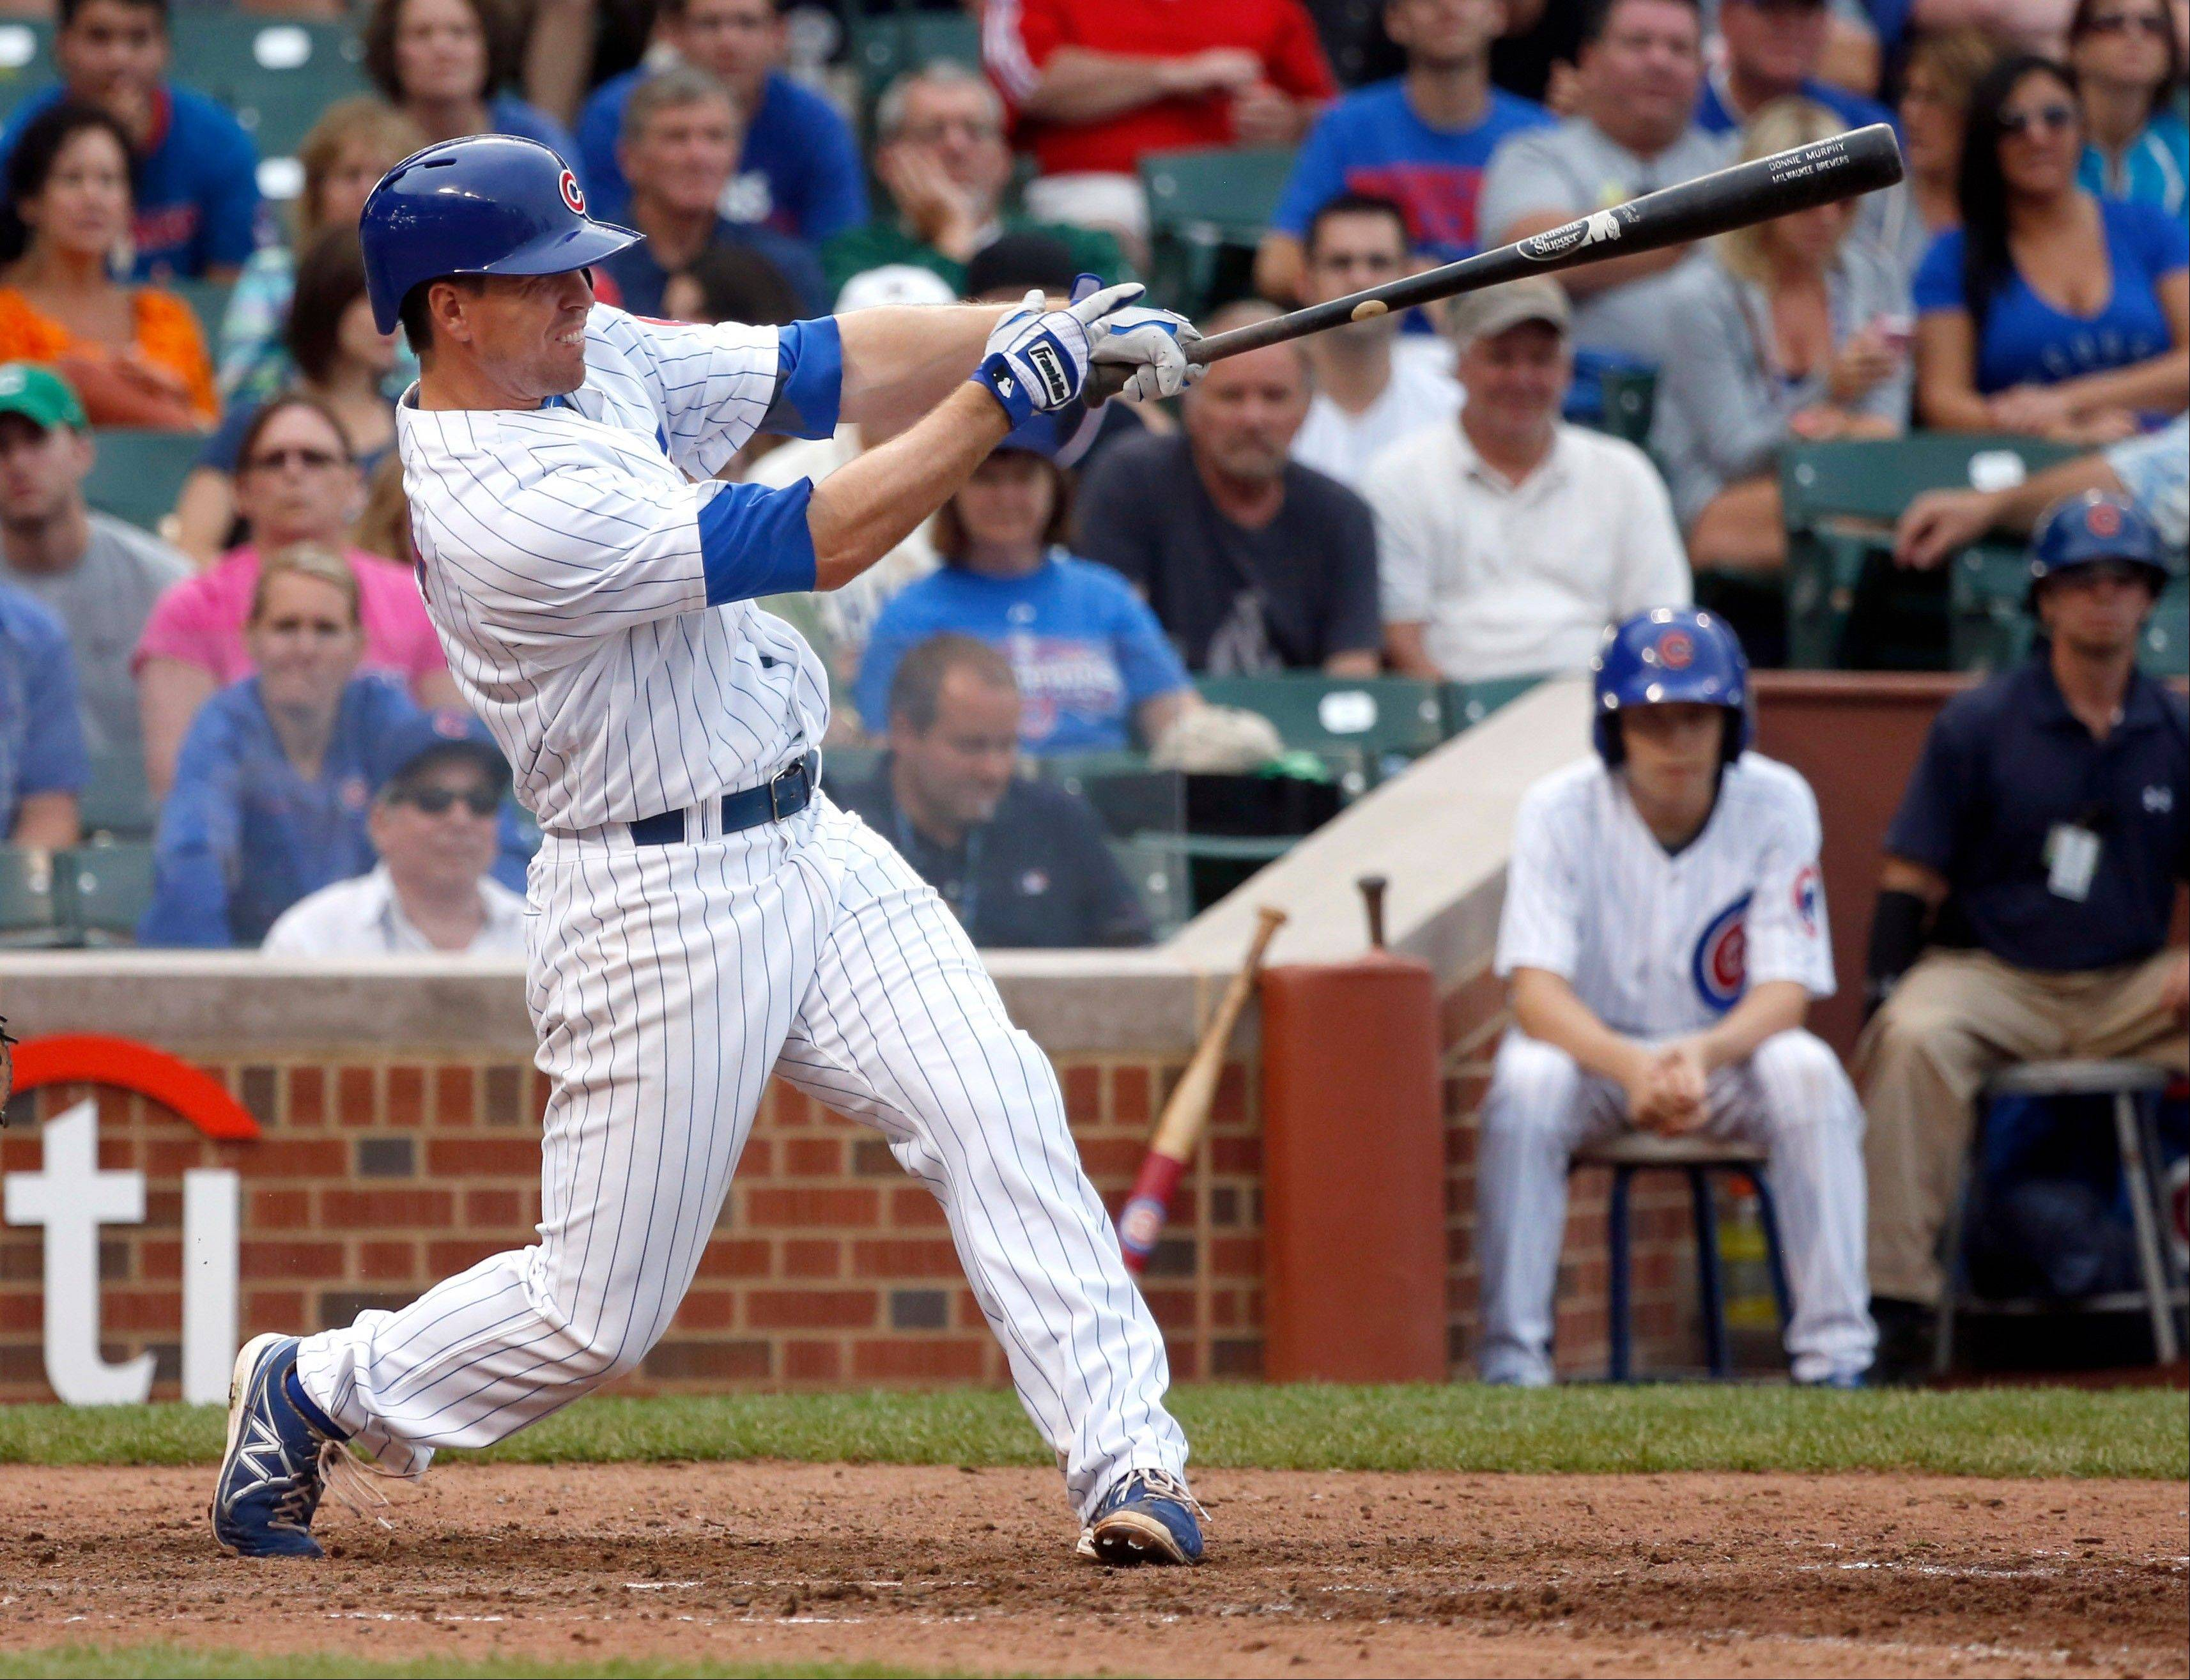 Chicago Cubs' Donnie Murphy hits a game-tying two-run home run off Washington Nationals starting pitcher Stephen Strasburg during the ninth inning of a baseball game on Thursday, Aug. 22, 2013, in Chicago.